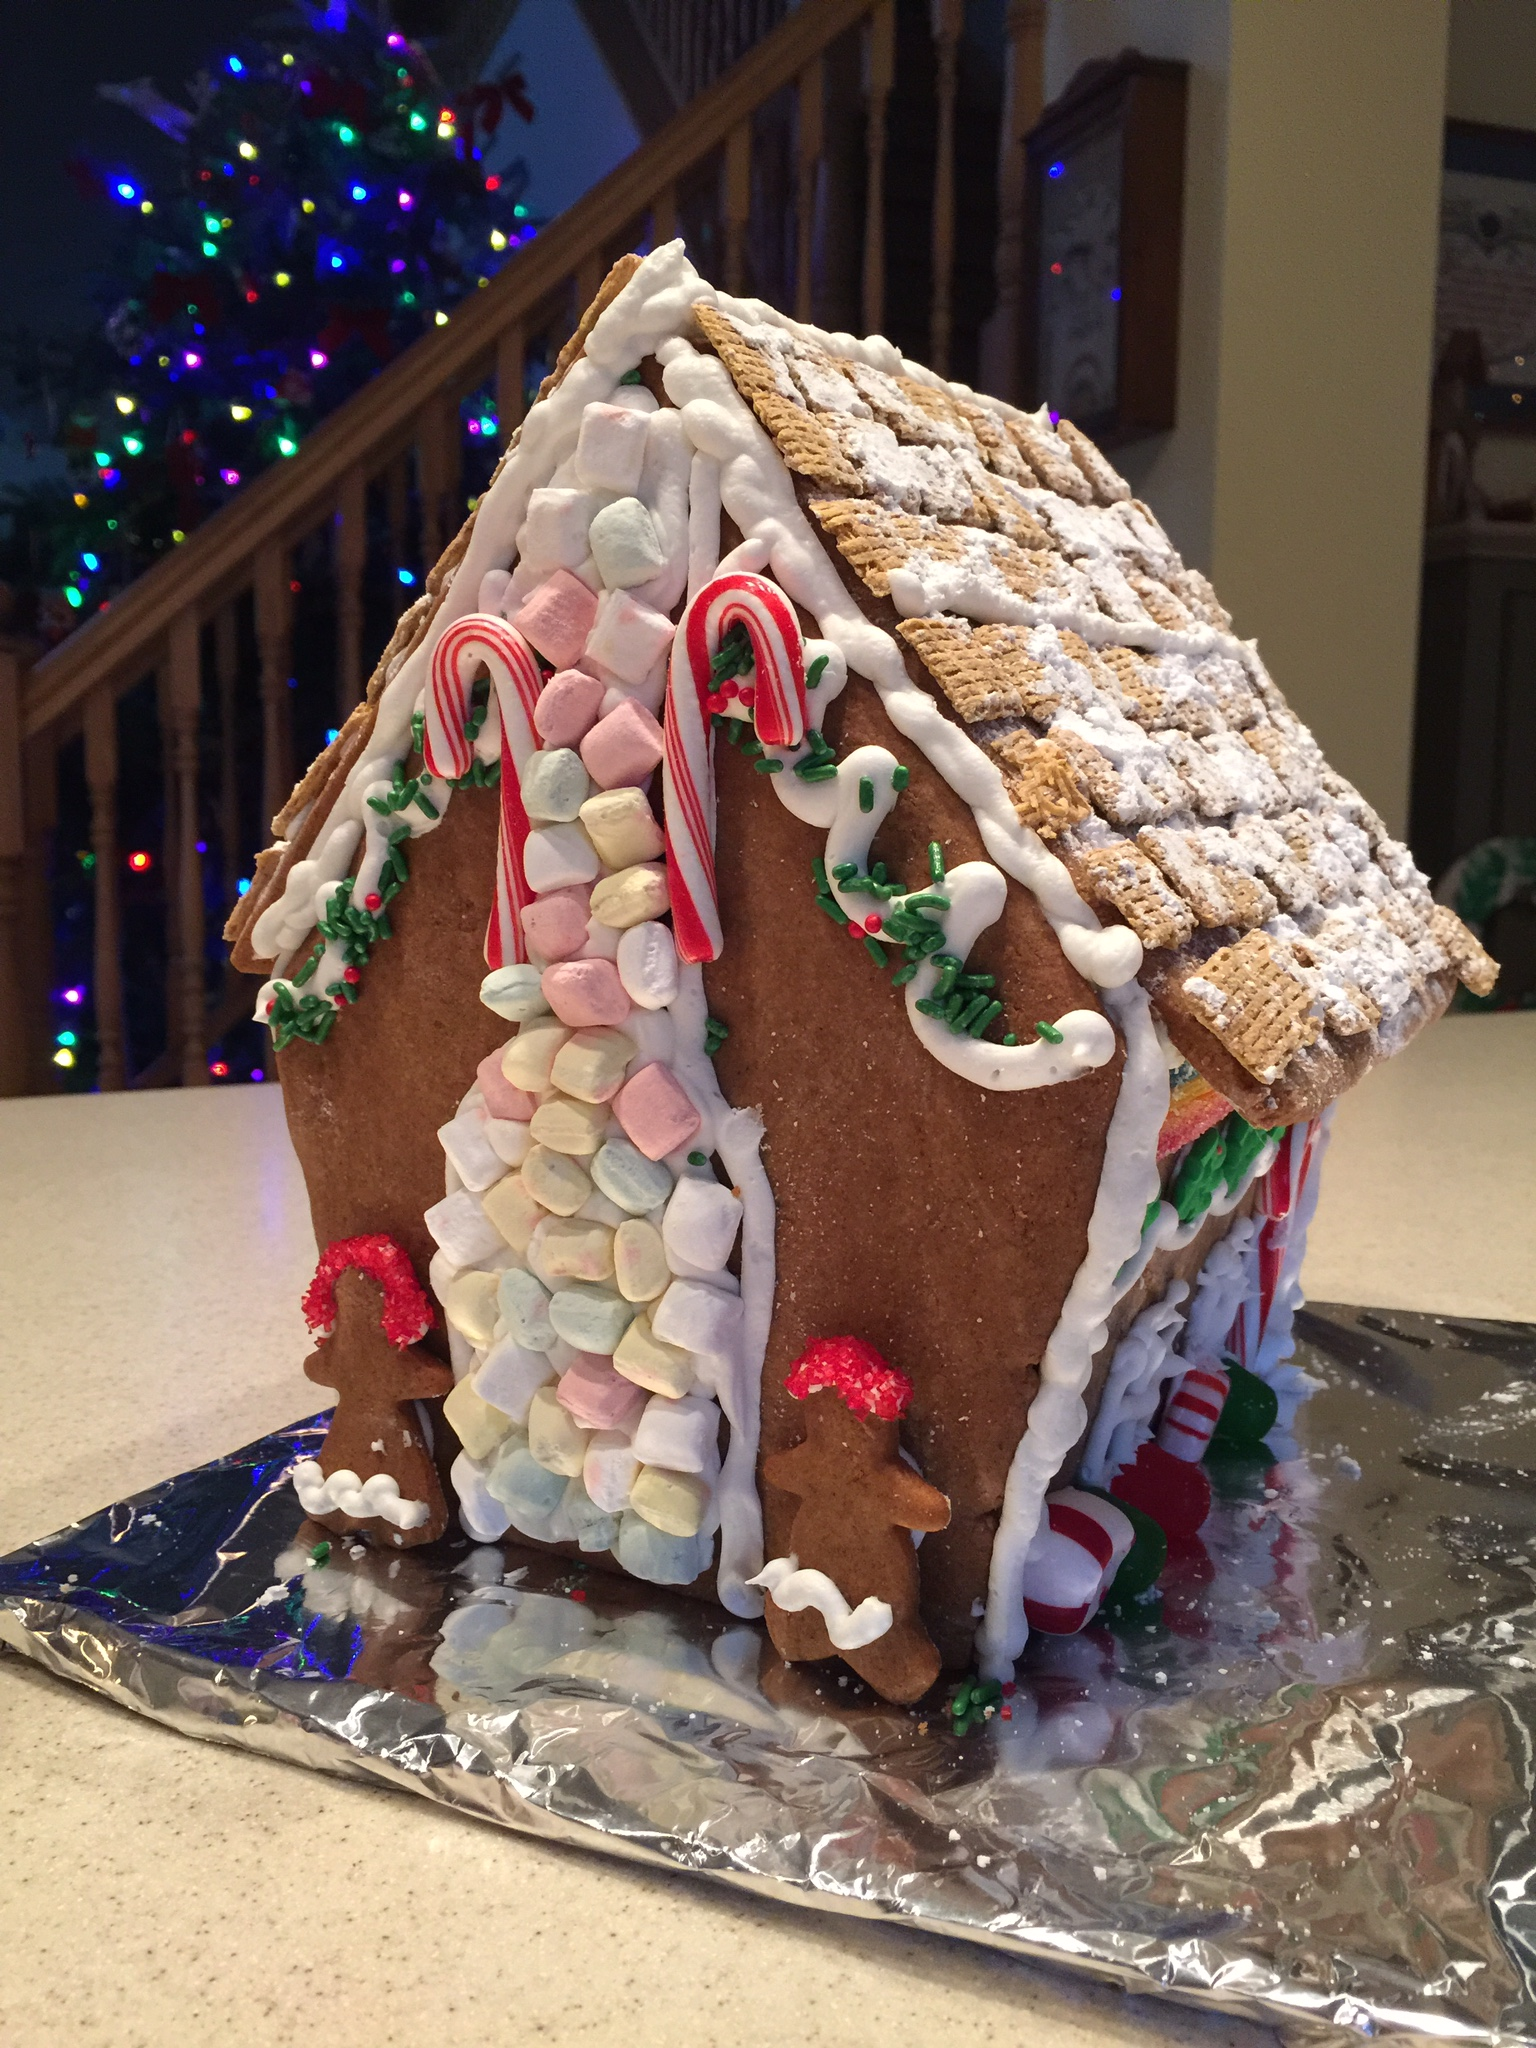 Meg and I had fun making a gingerbread house together.